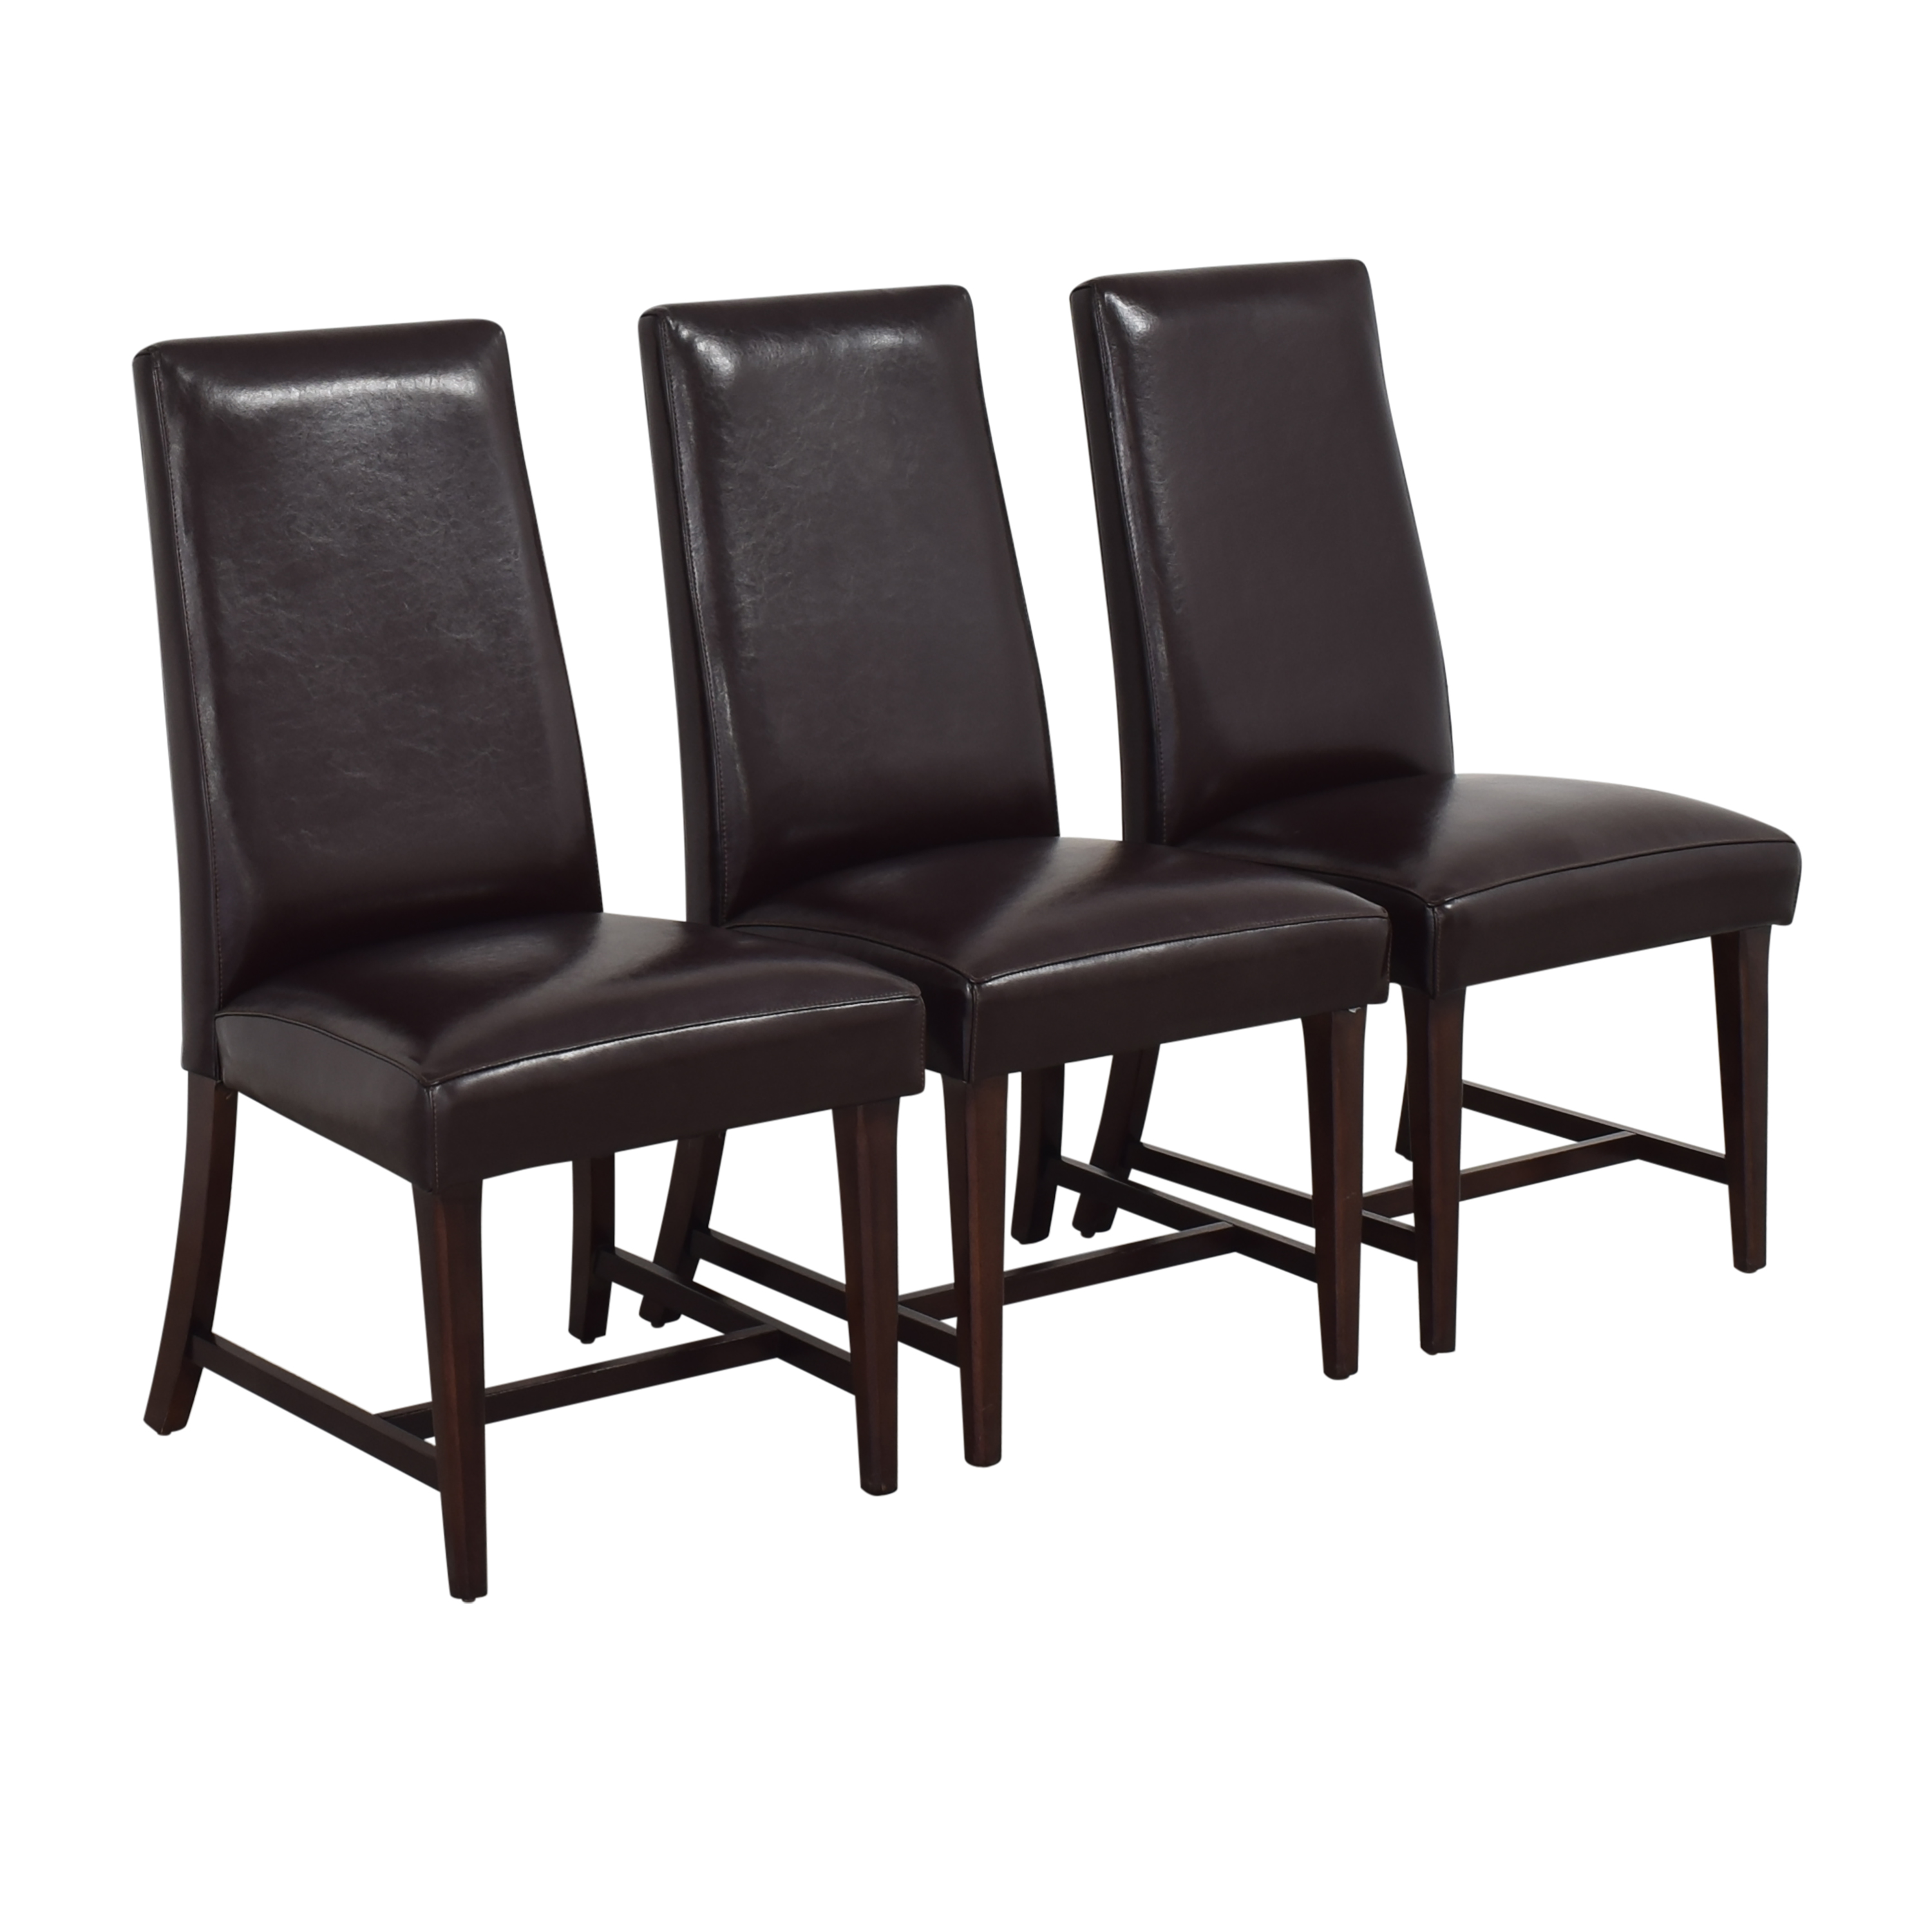 buy Shermag Shermag High Back Dining Chairs online